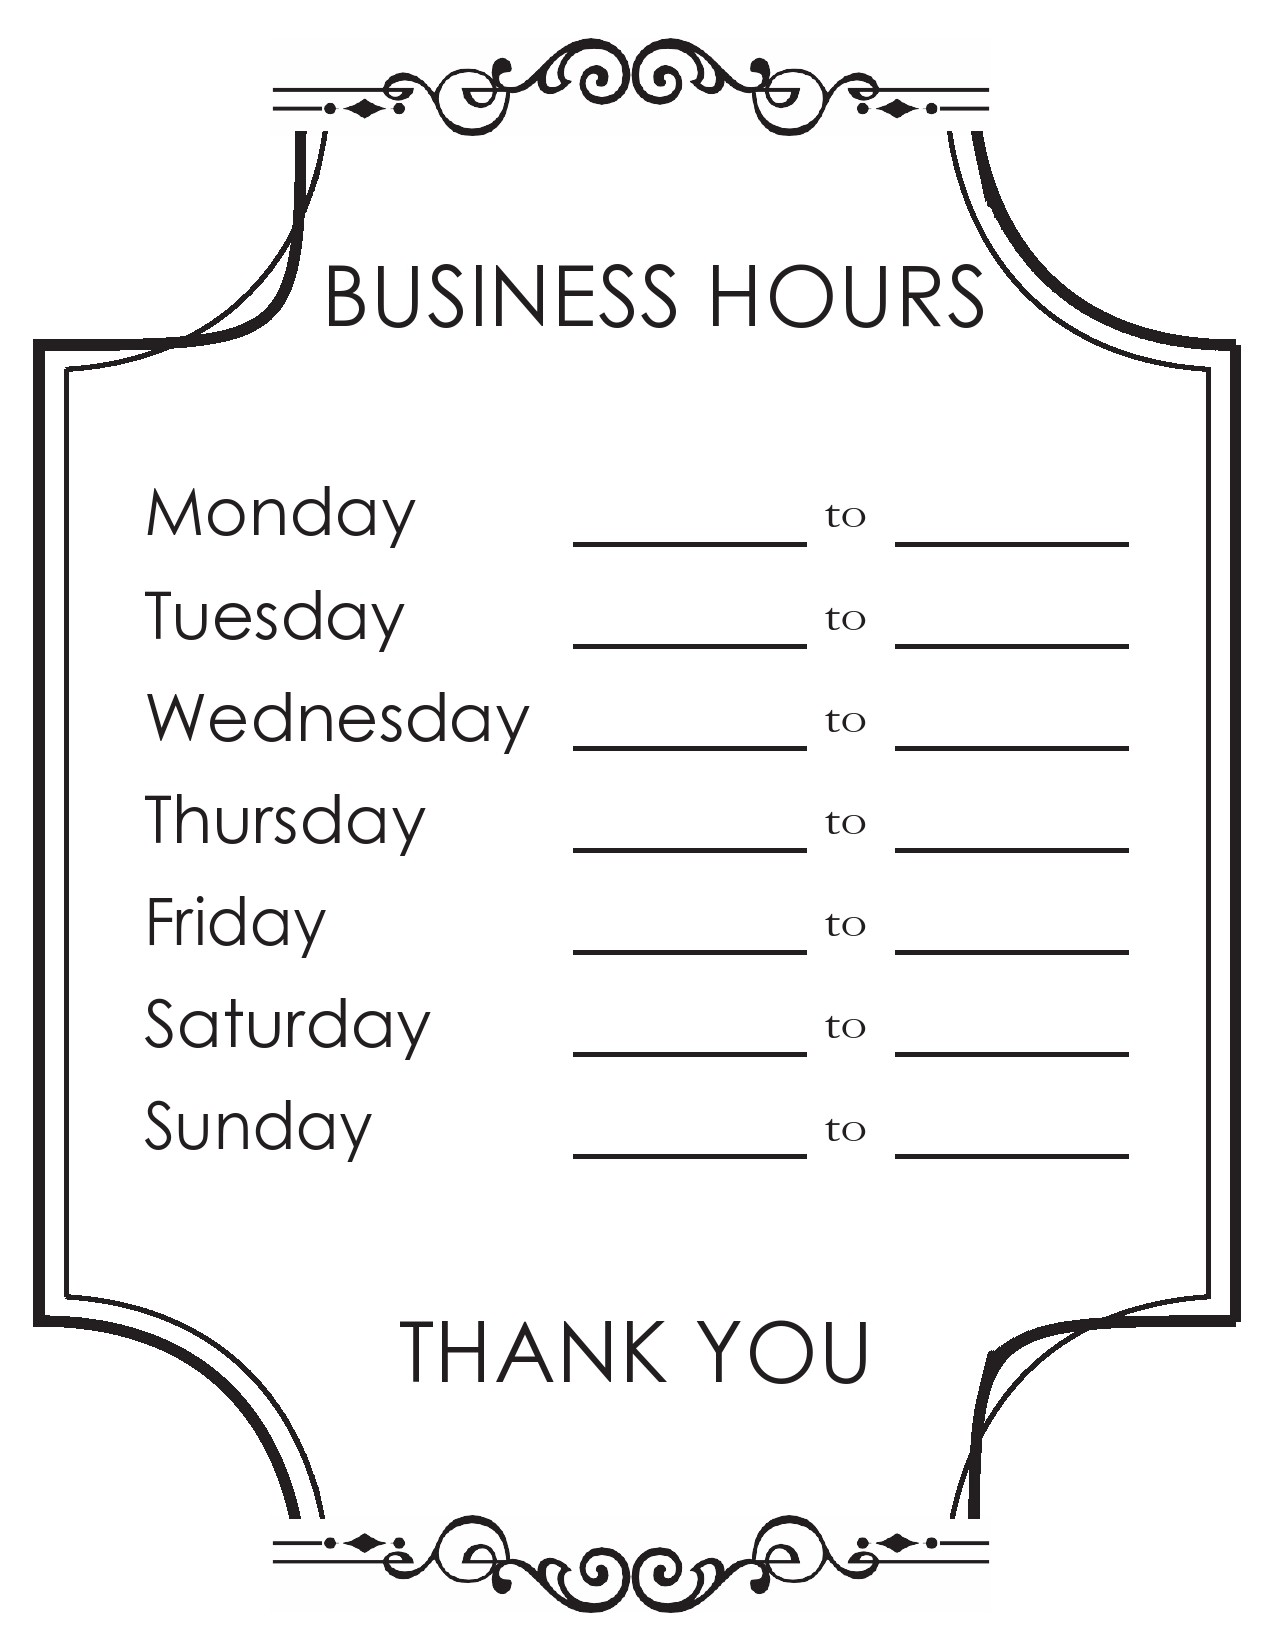 Free business hours template 01